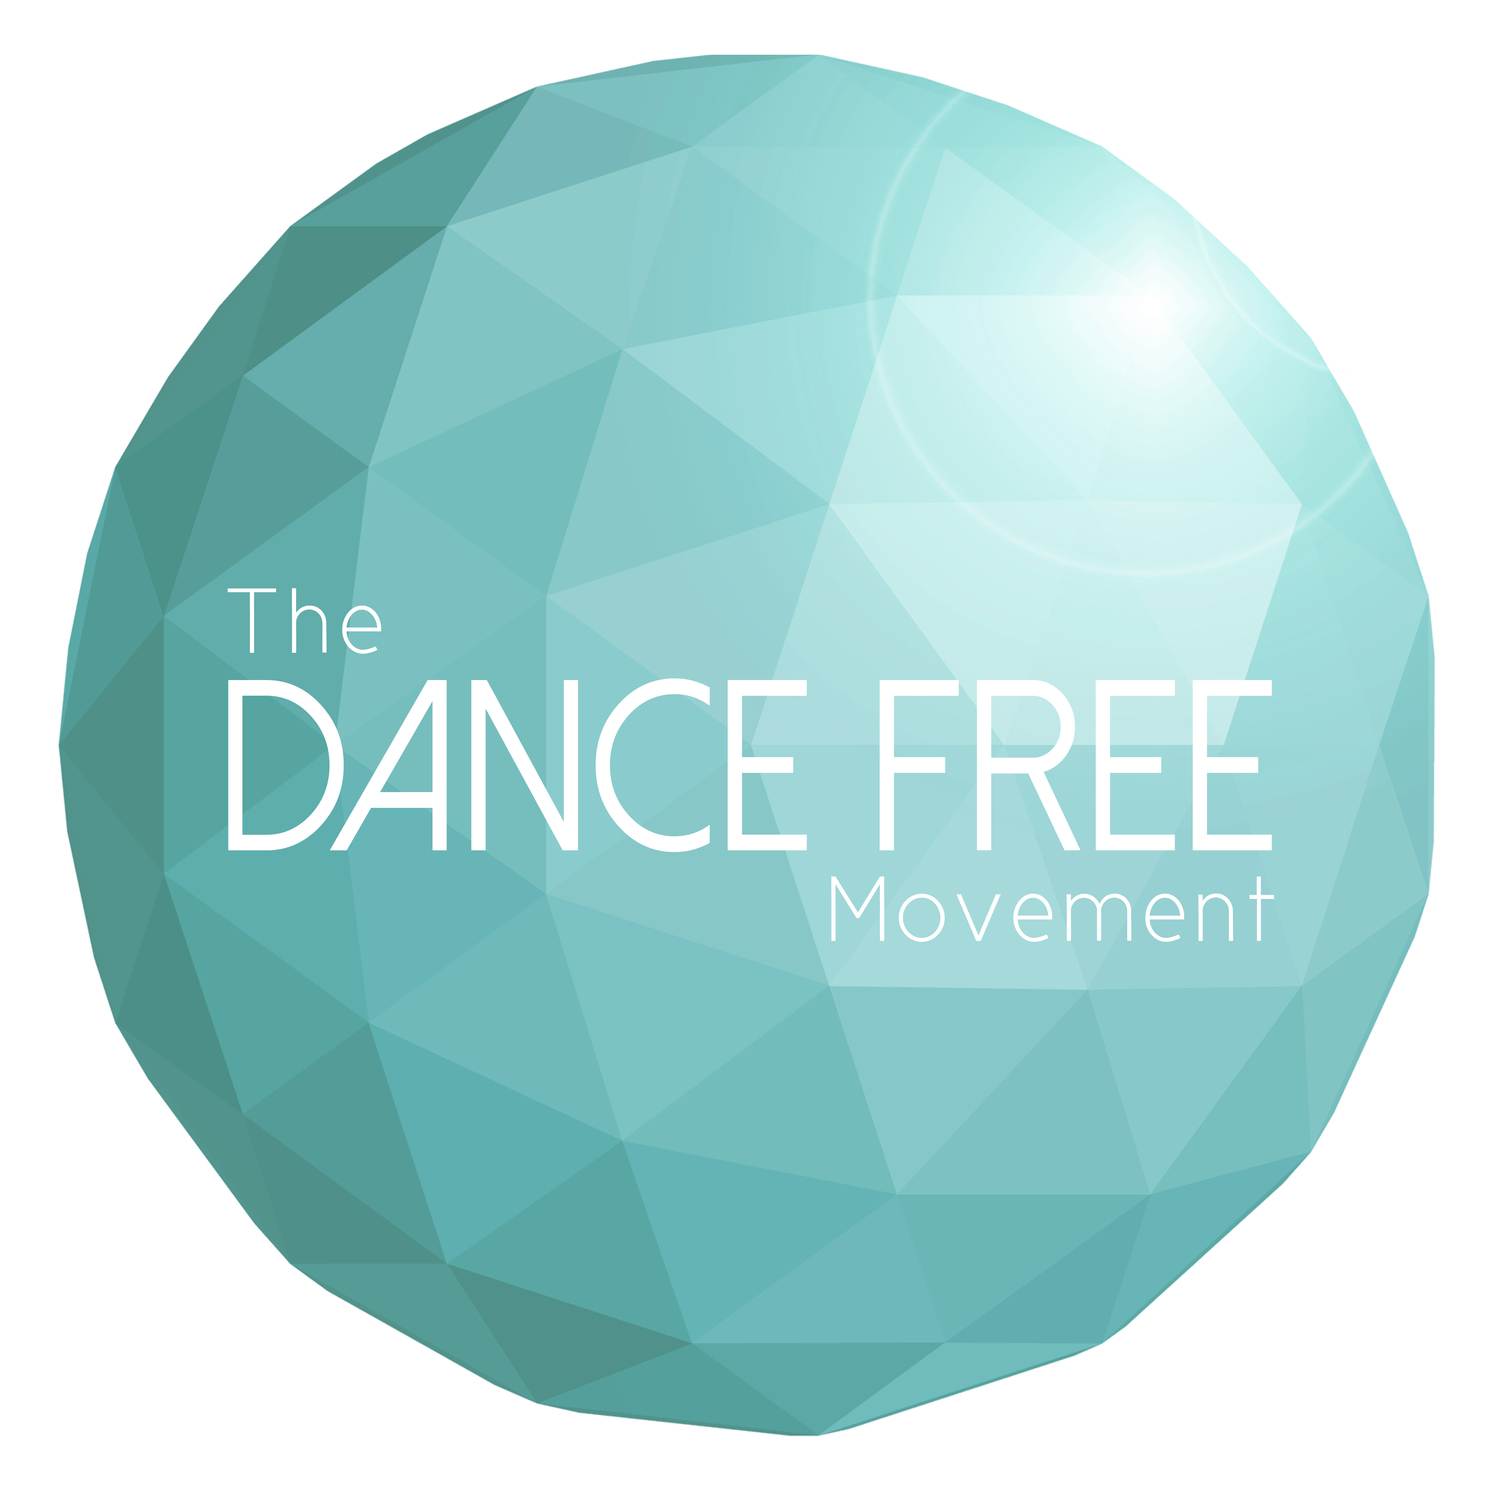 DANCEFREE MOVEMENT